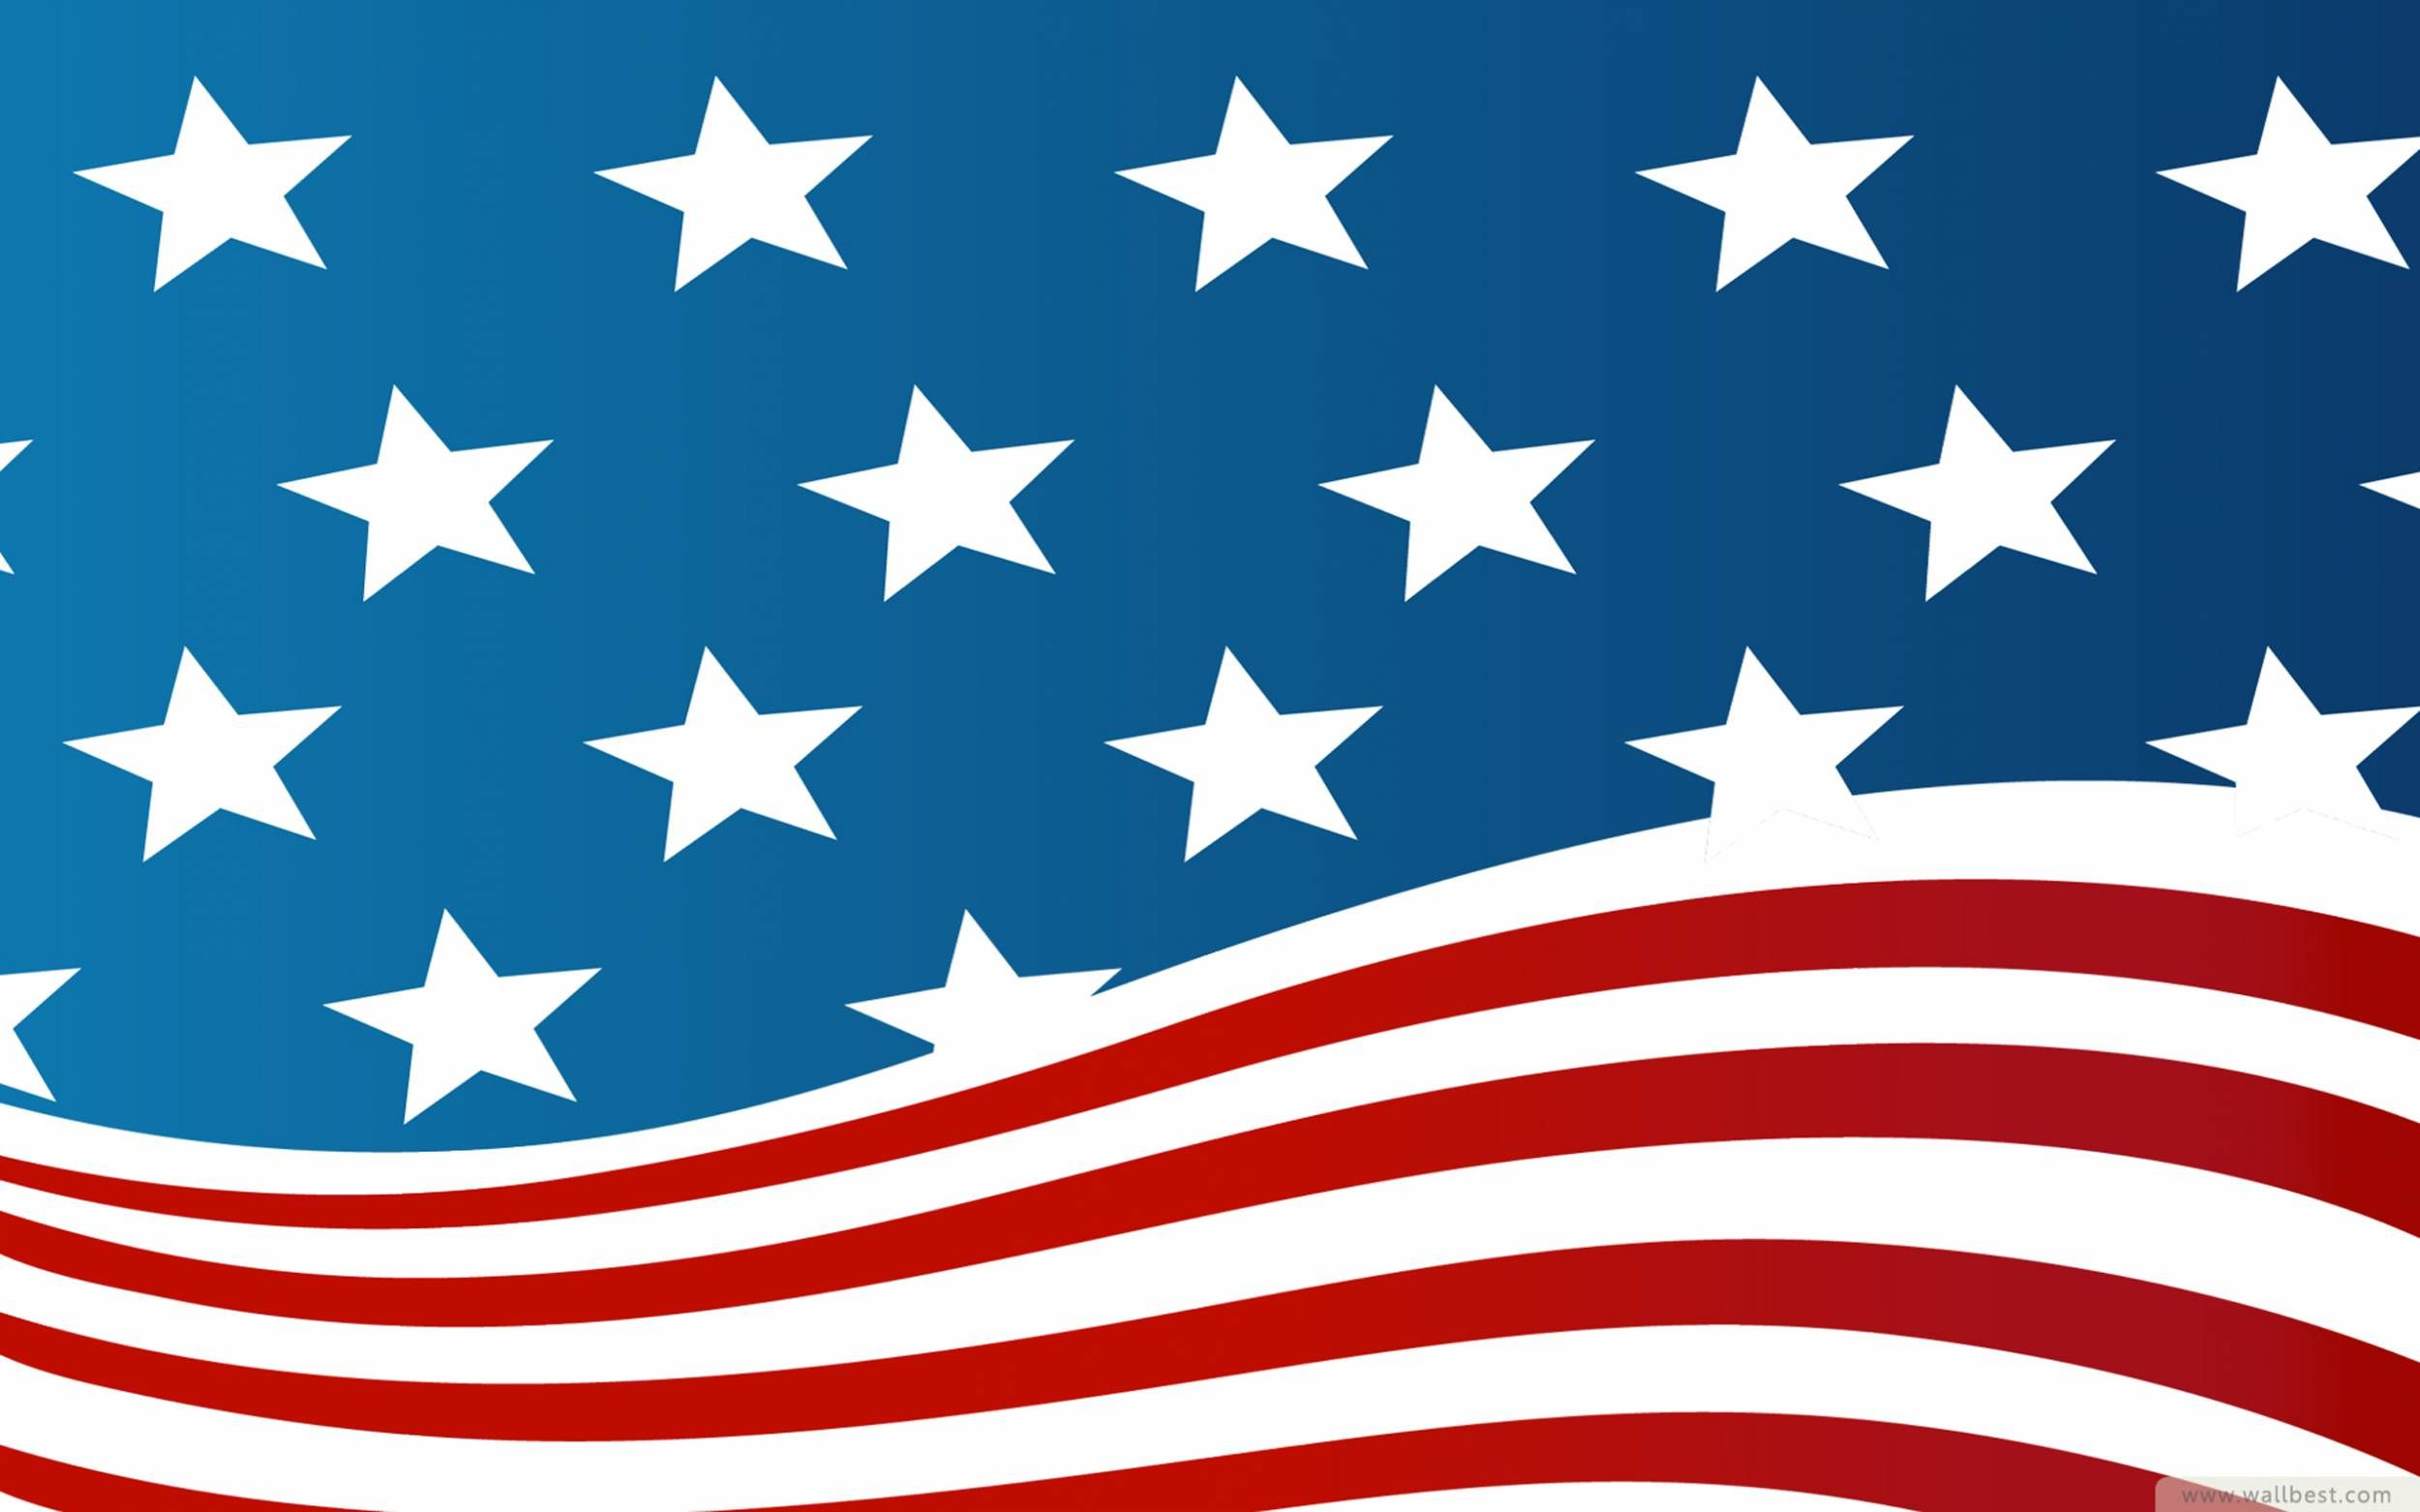 2500x1562 Patriotic Wallpaper, 2560x1600 px – download free